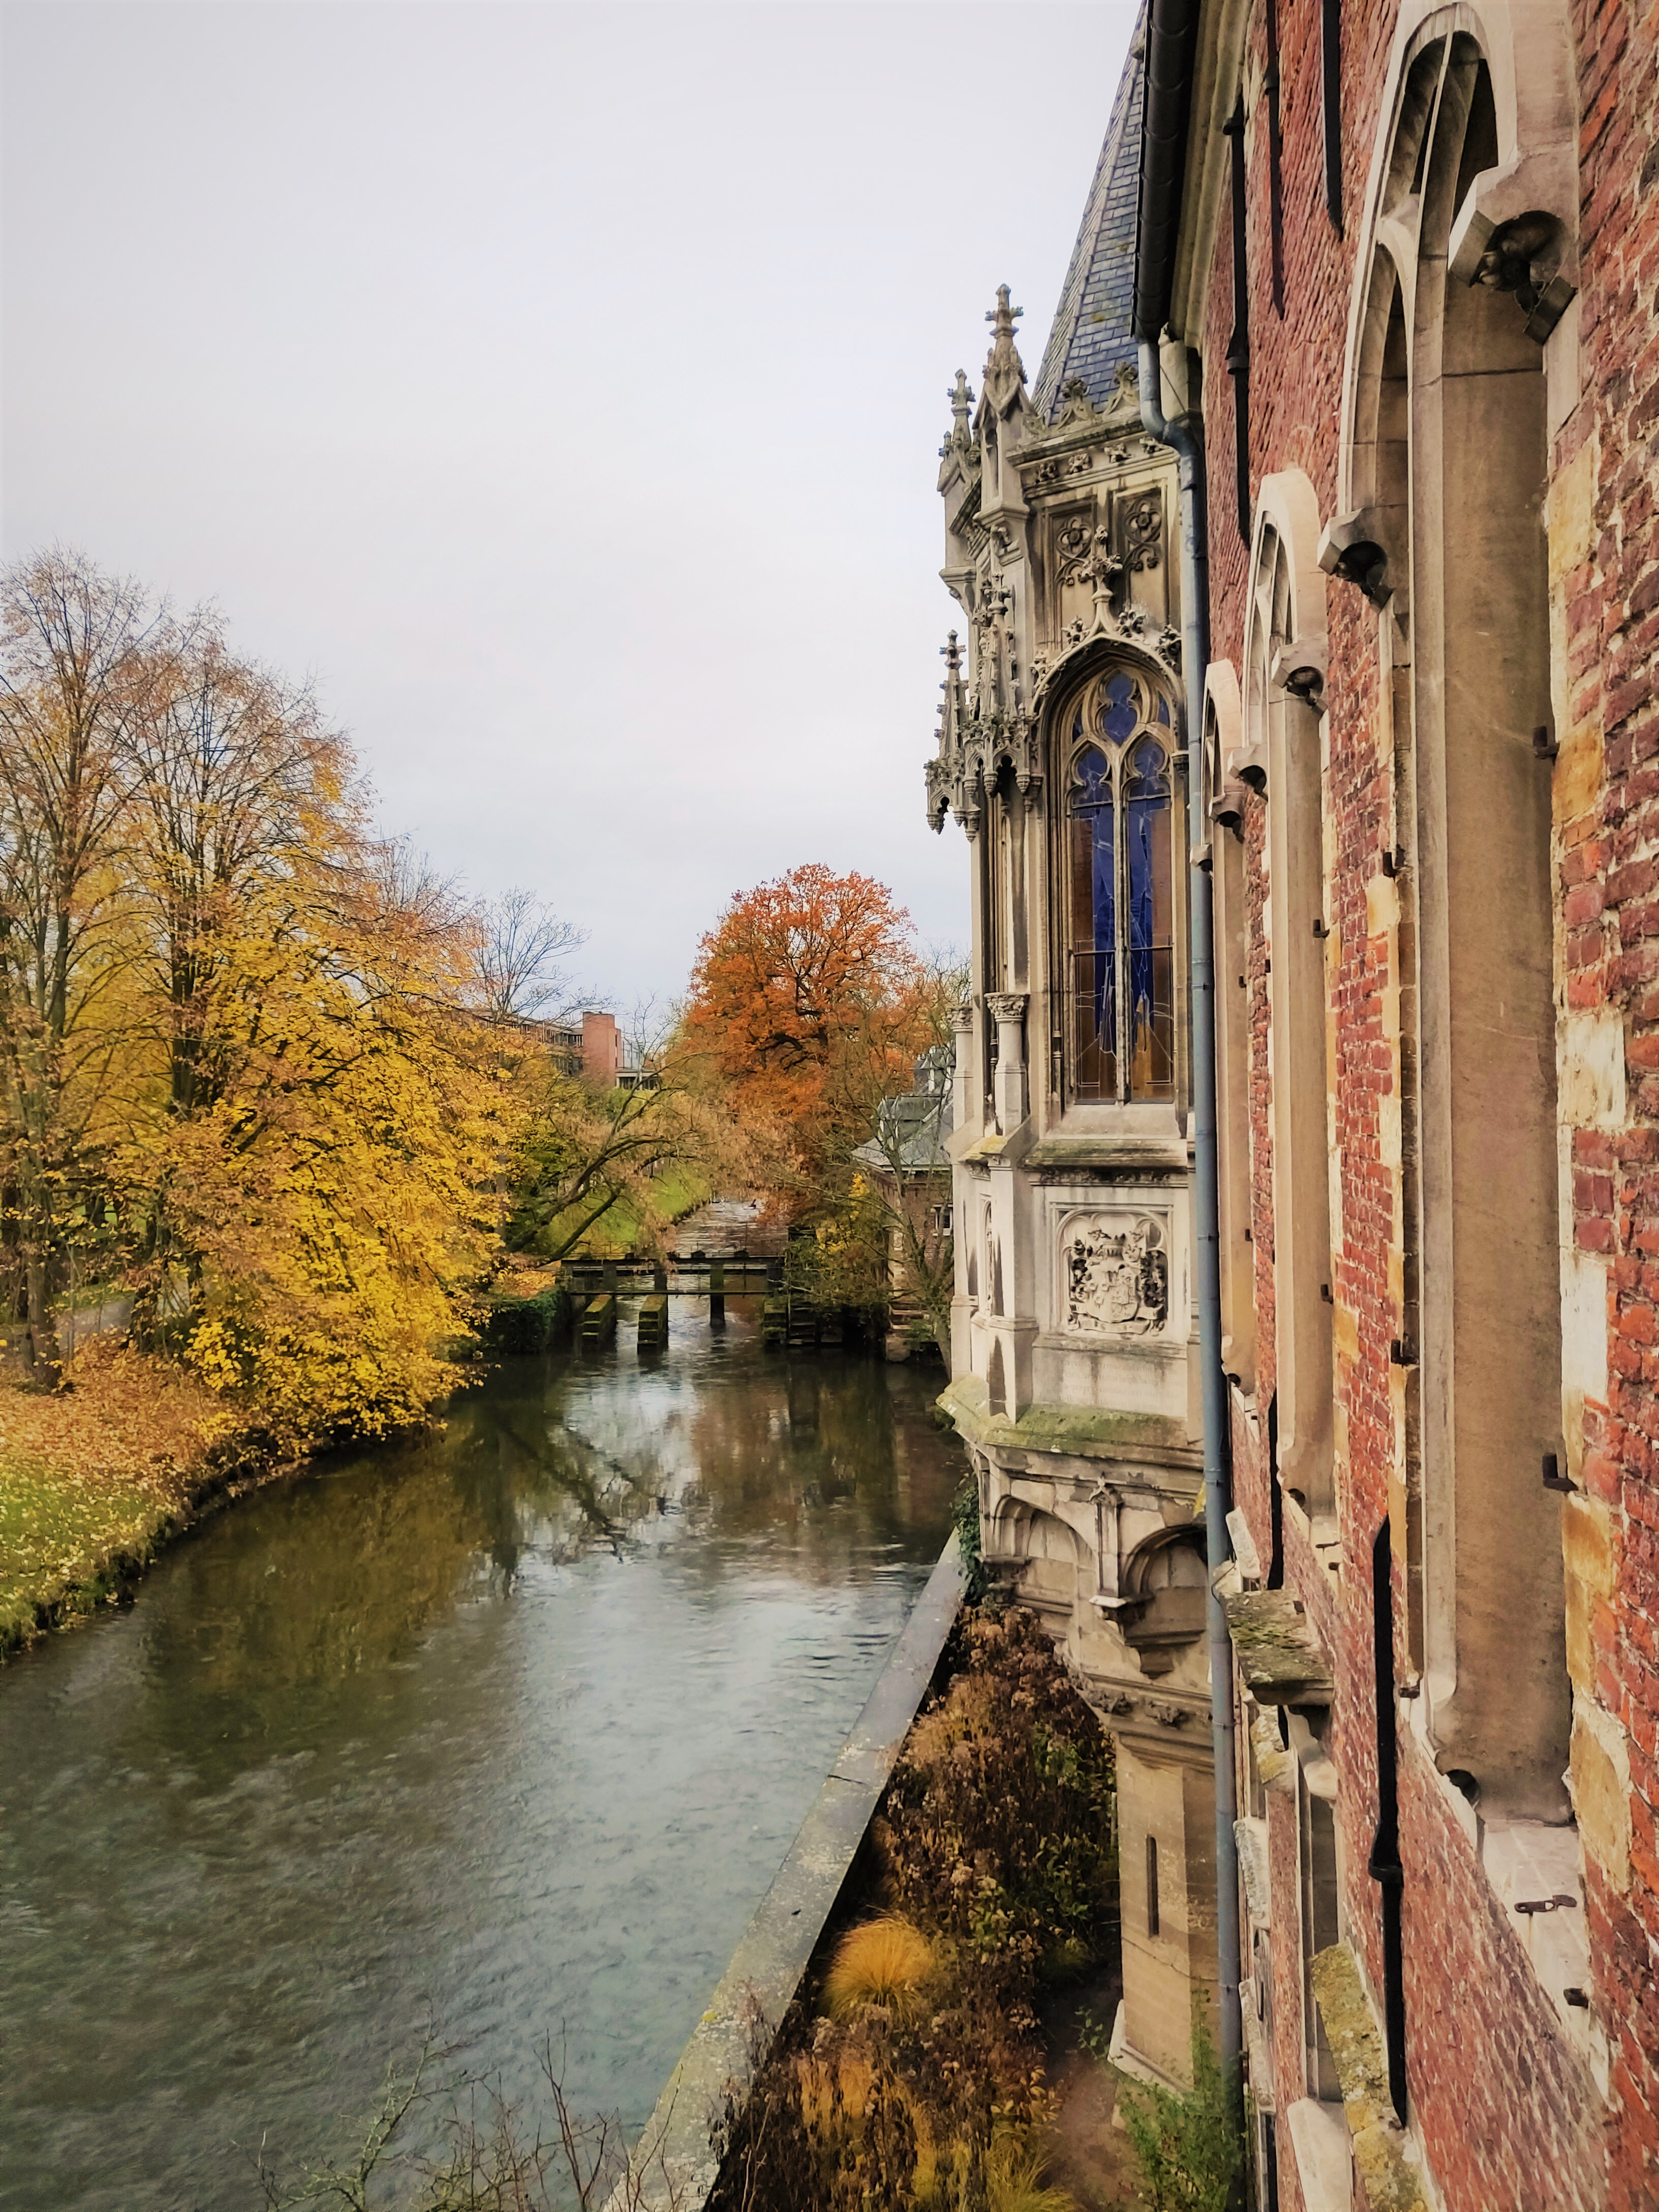 The Castle of Arenberg: Five centuries of the Arenbergs in Leuven, Belgium